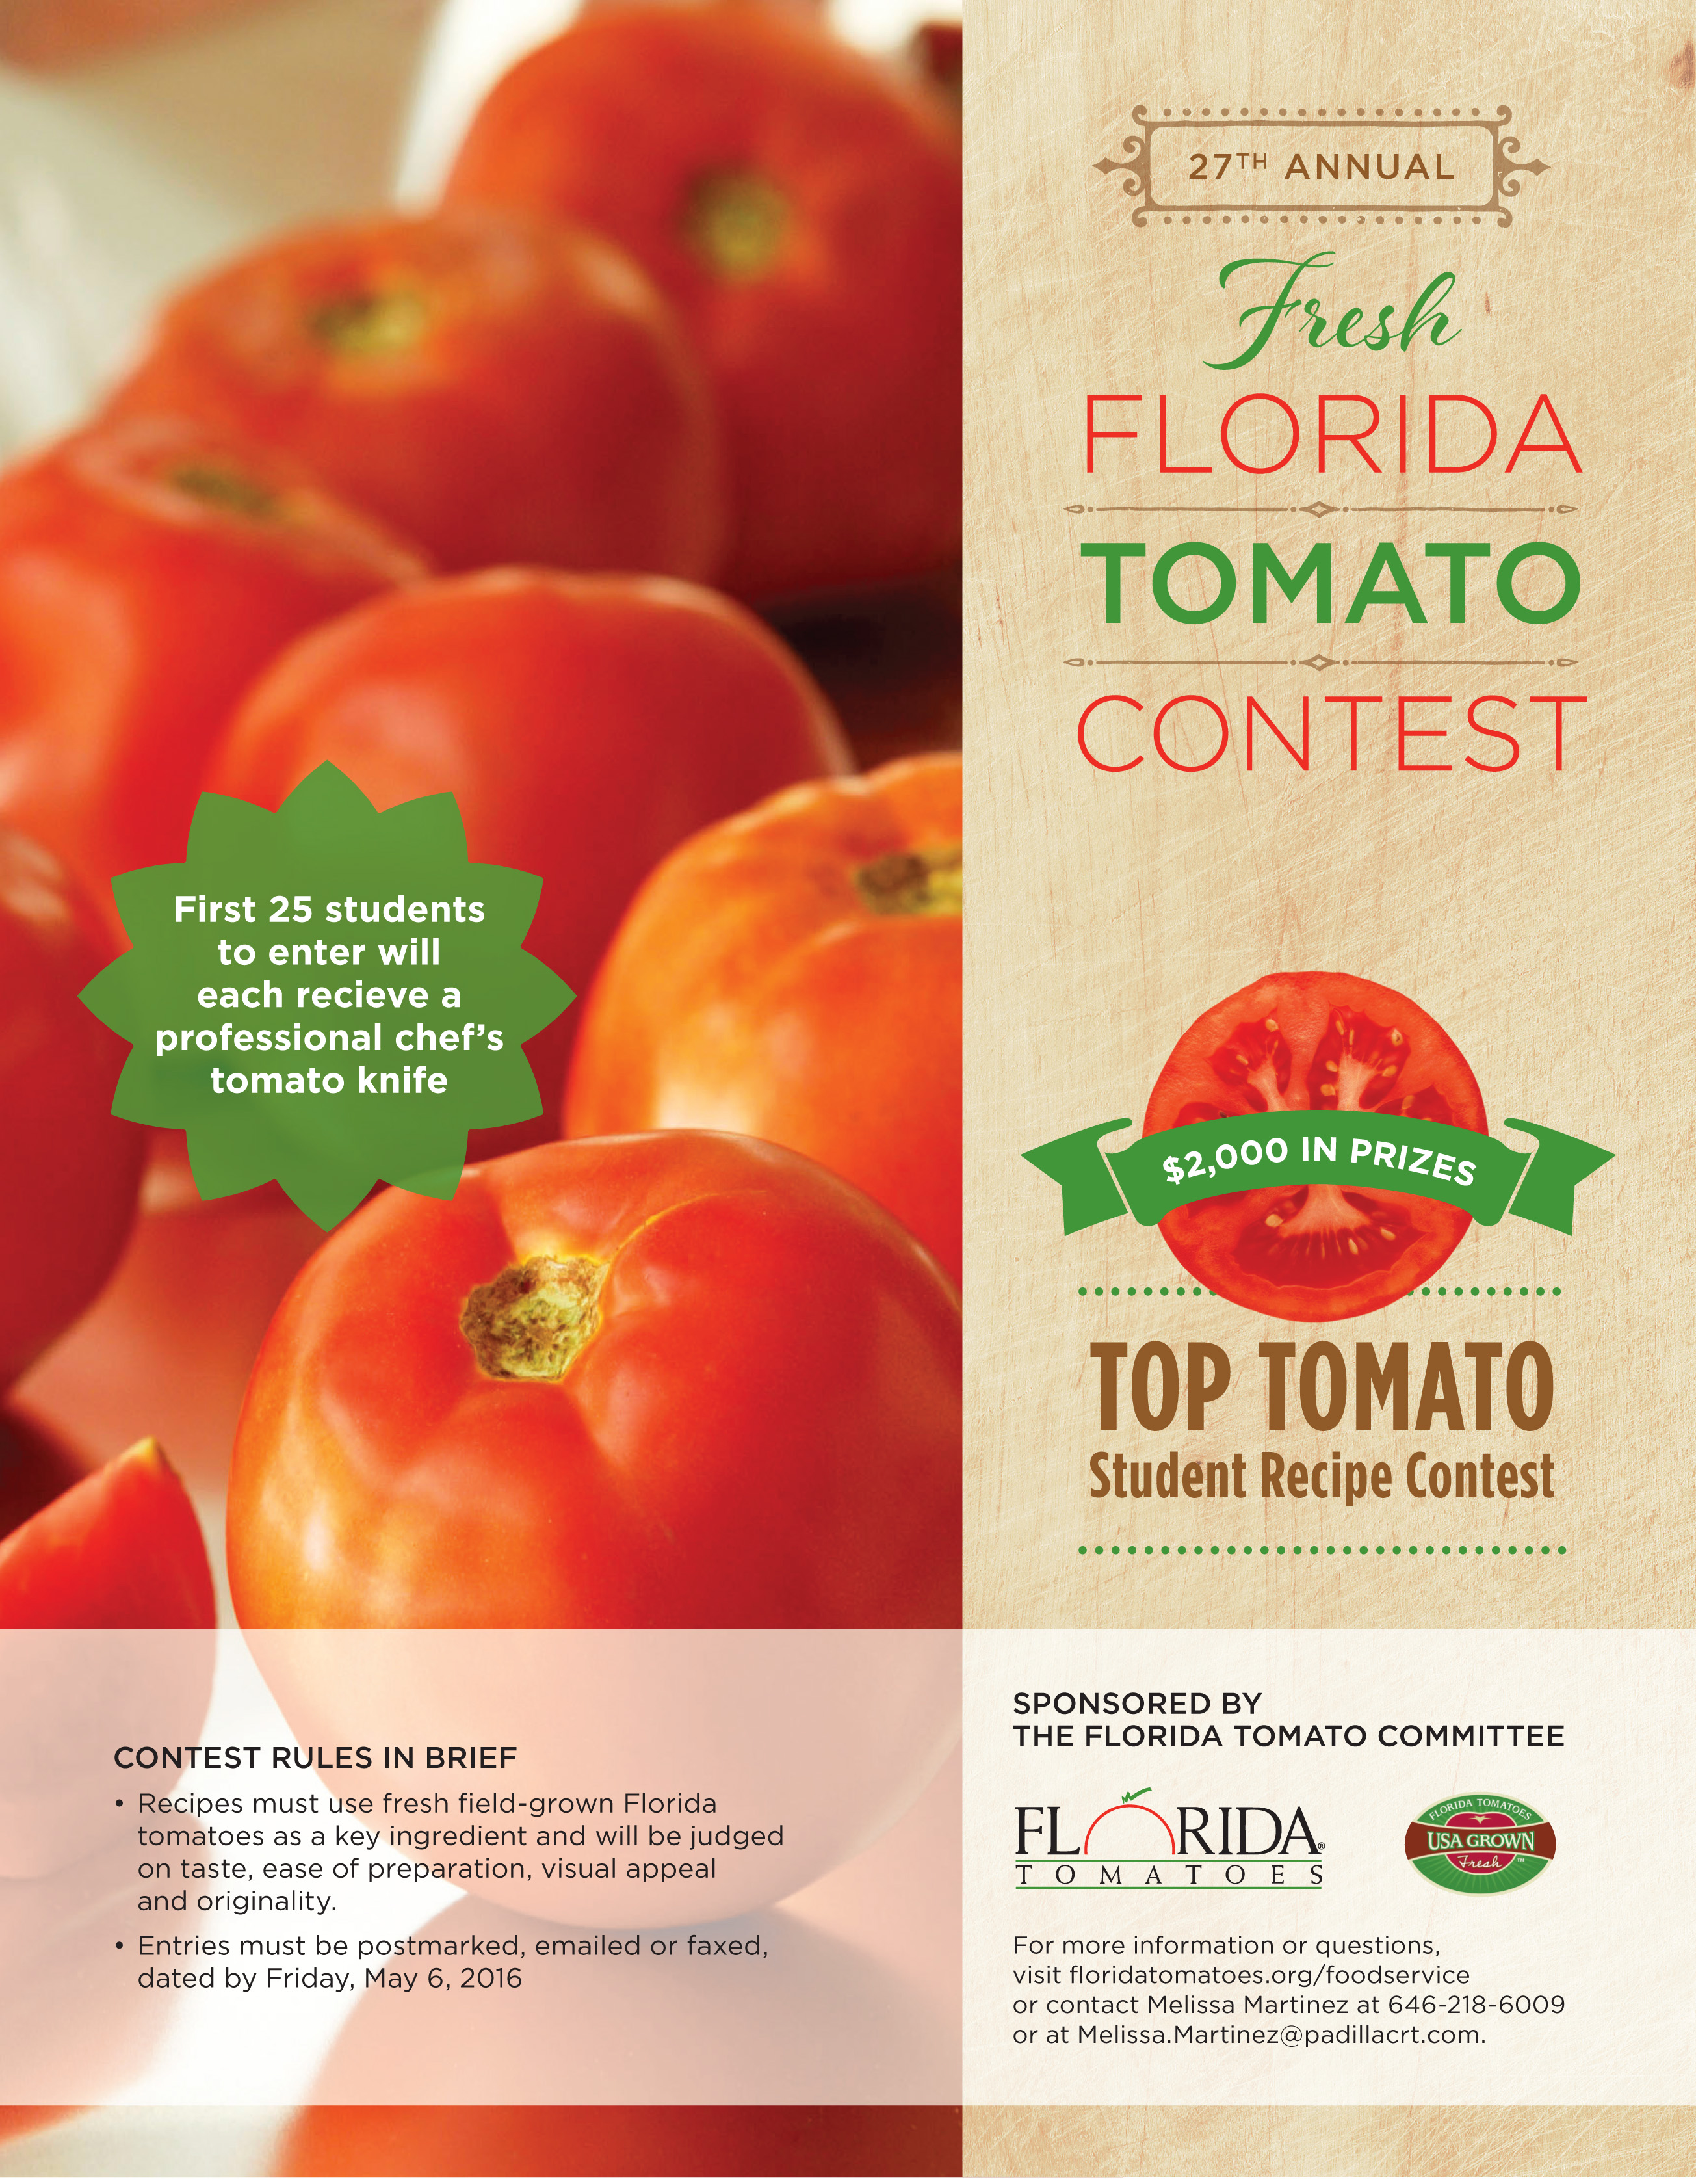 16-1-FTC-Tomato Contest Poster 8.5x11-F2.indd